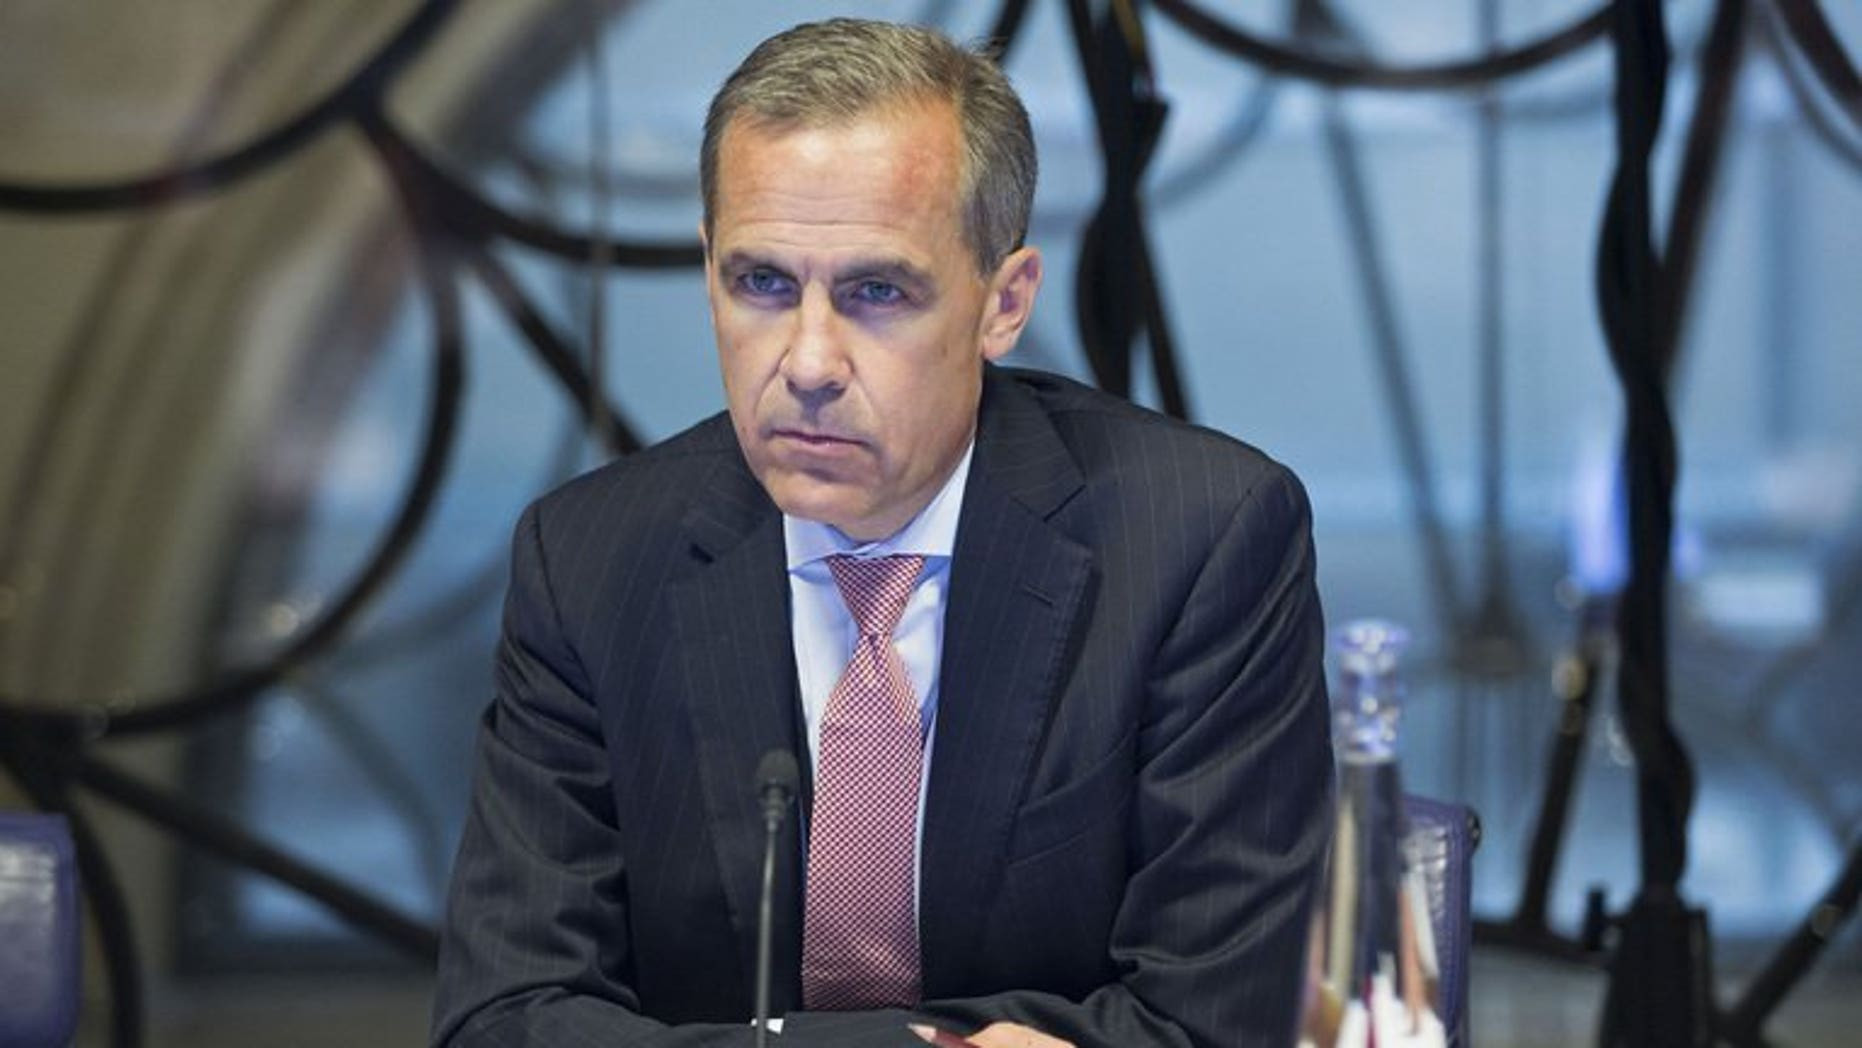 Mark Carney, new governor of the Bank of England, attends a monetary policy committee in London on July 1, 2013. Bank of England policymakers voted unanimously to maintain record-low interest rate and maintain stimulus at Carney's first policy meeting, minutes show.